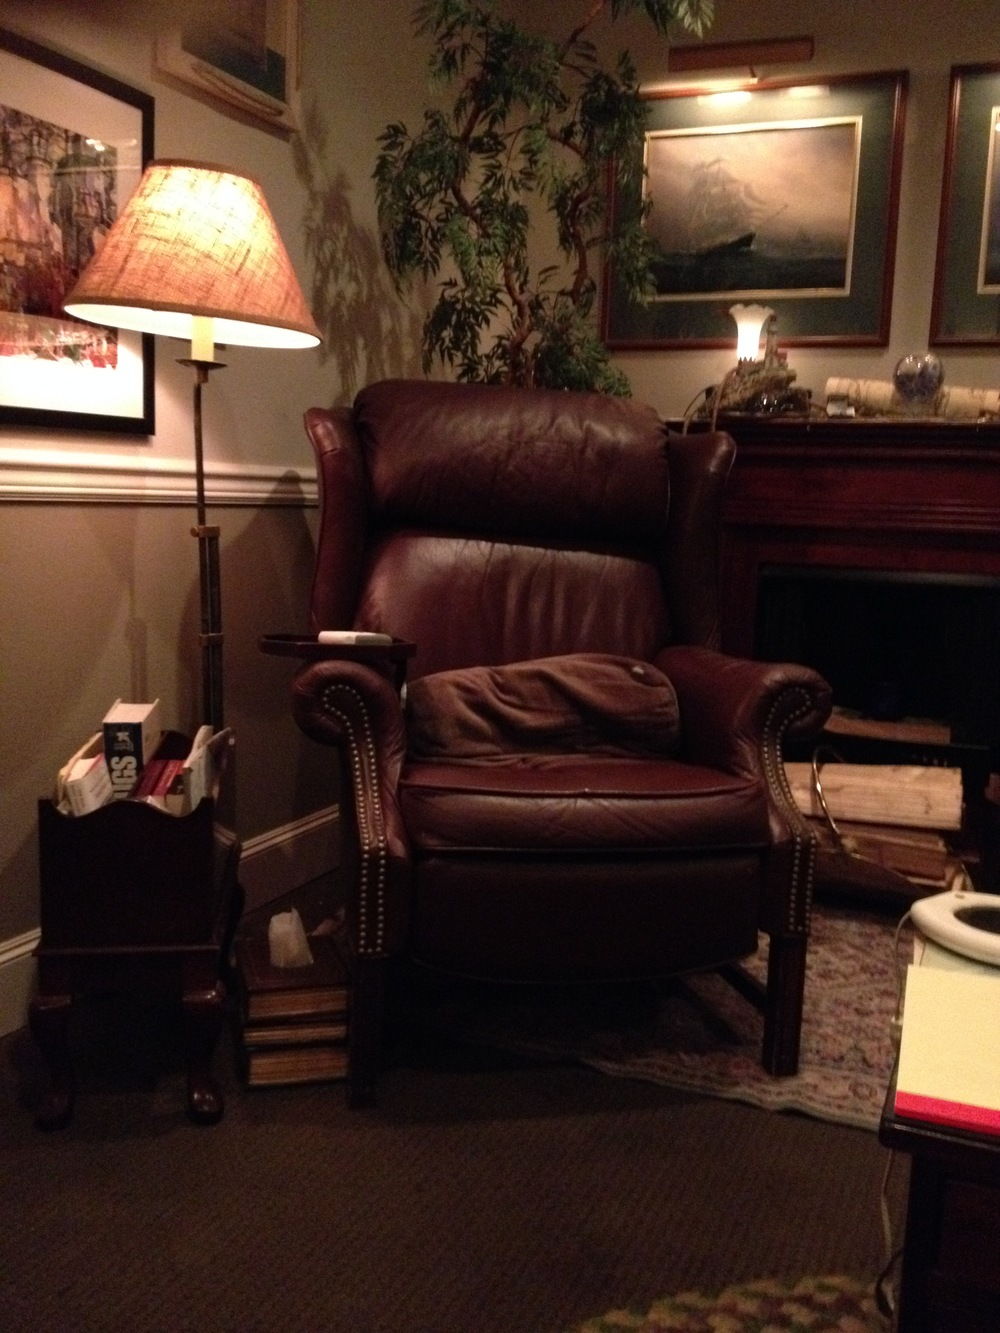 The Big Brown Chair: A tool of the trade.